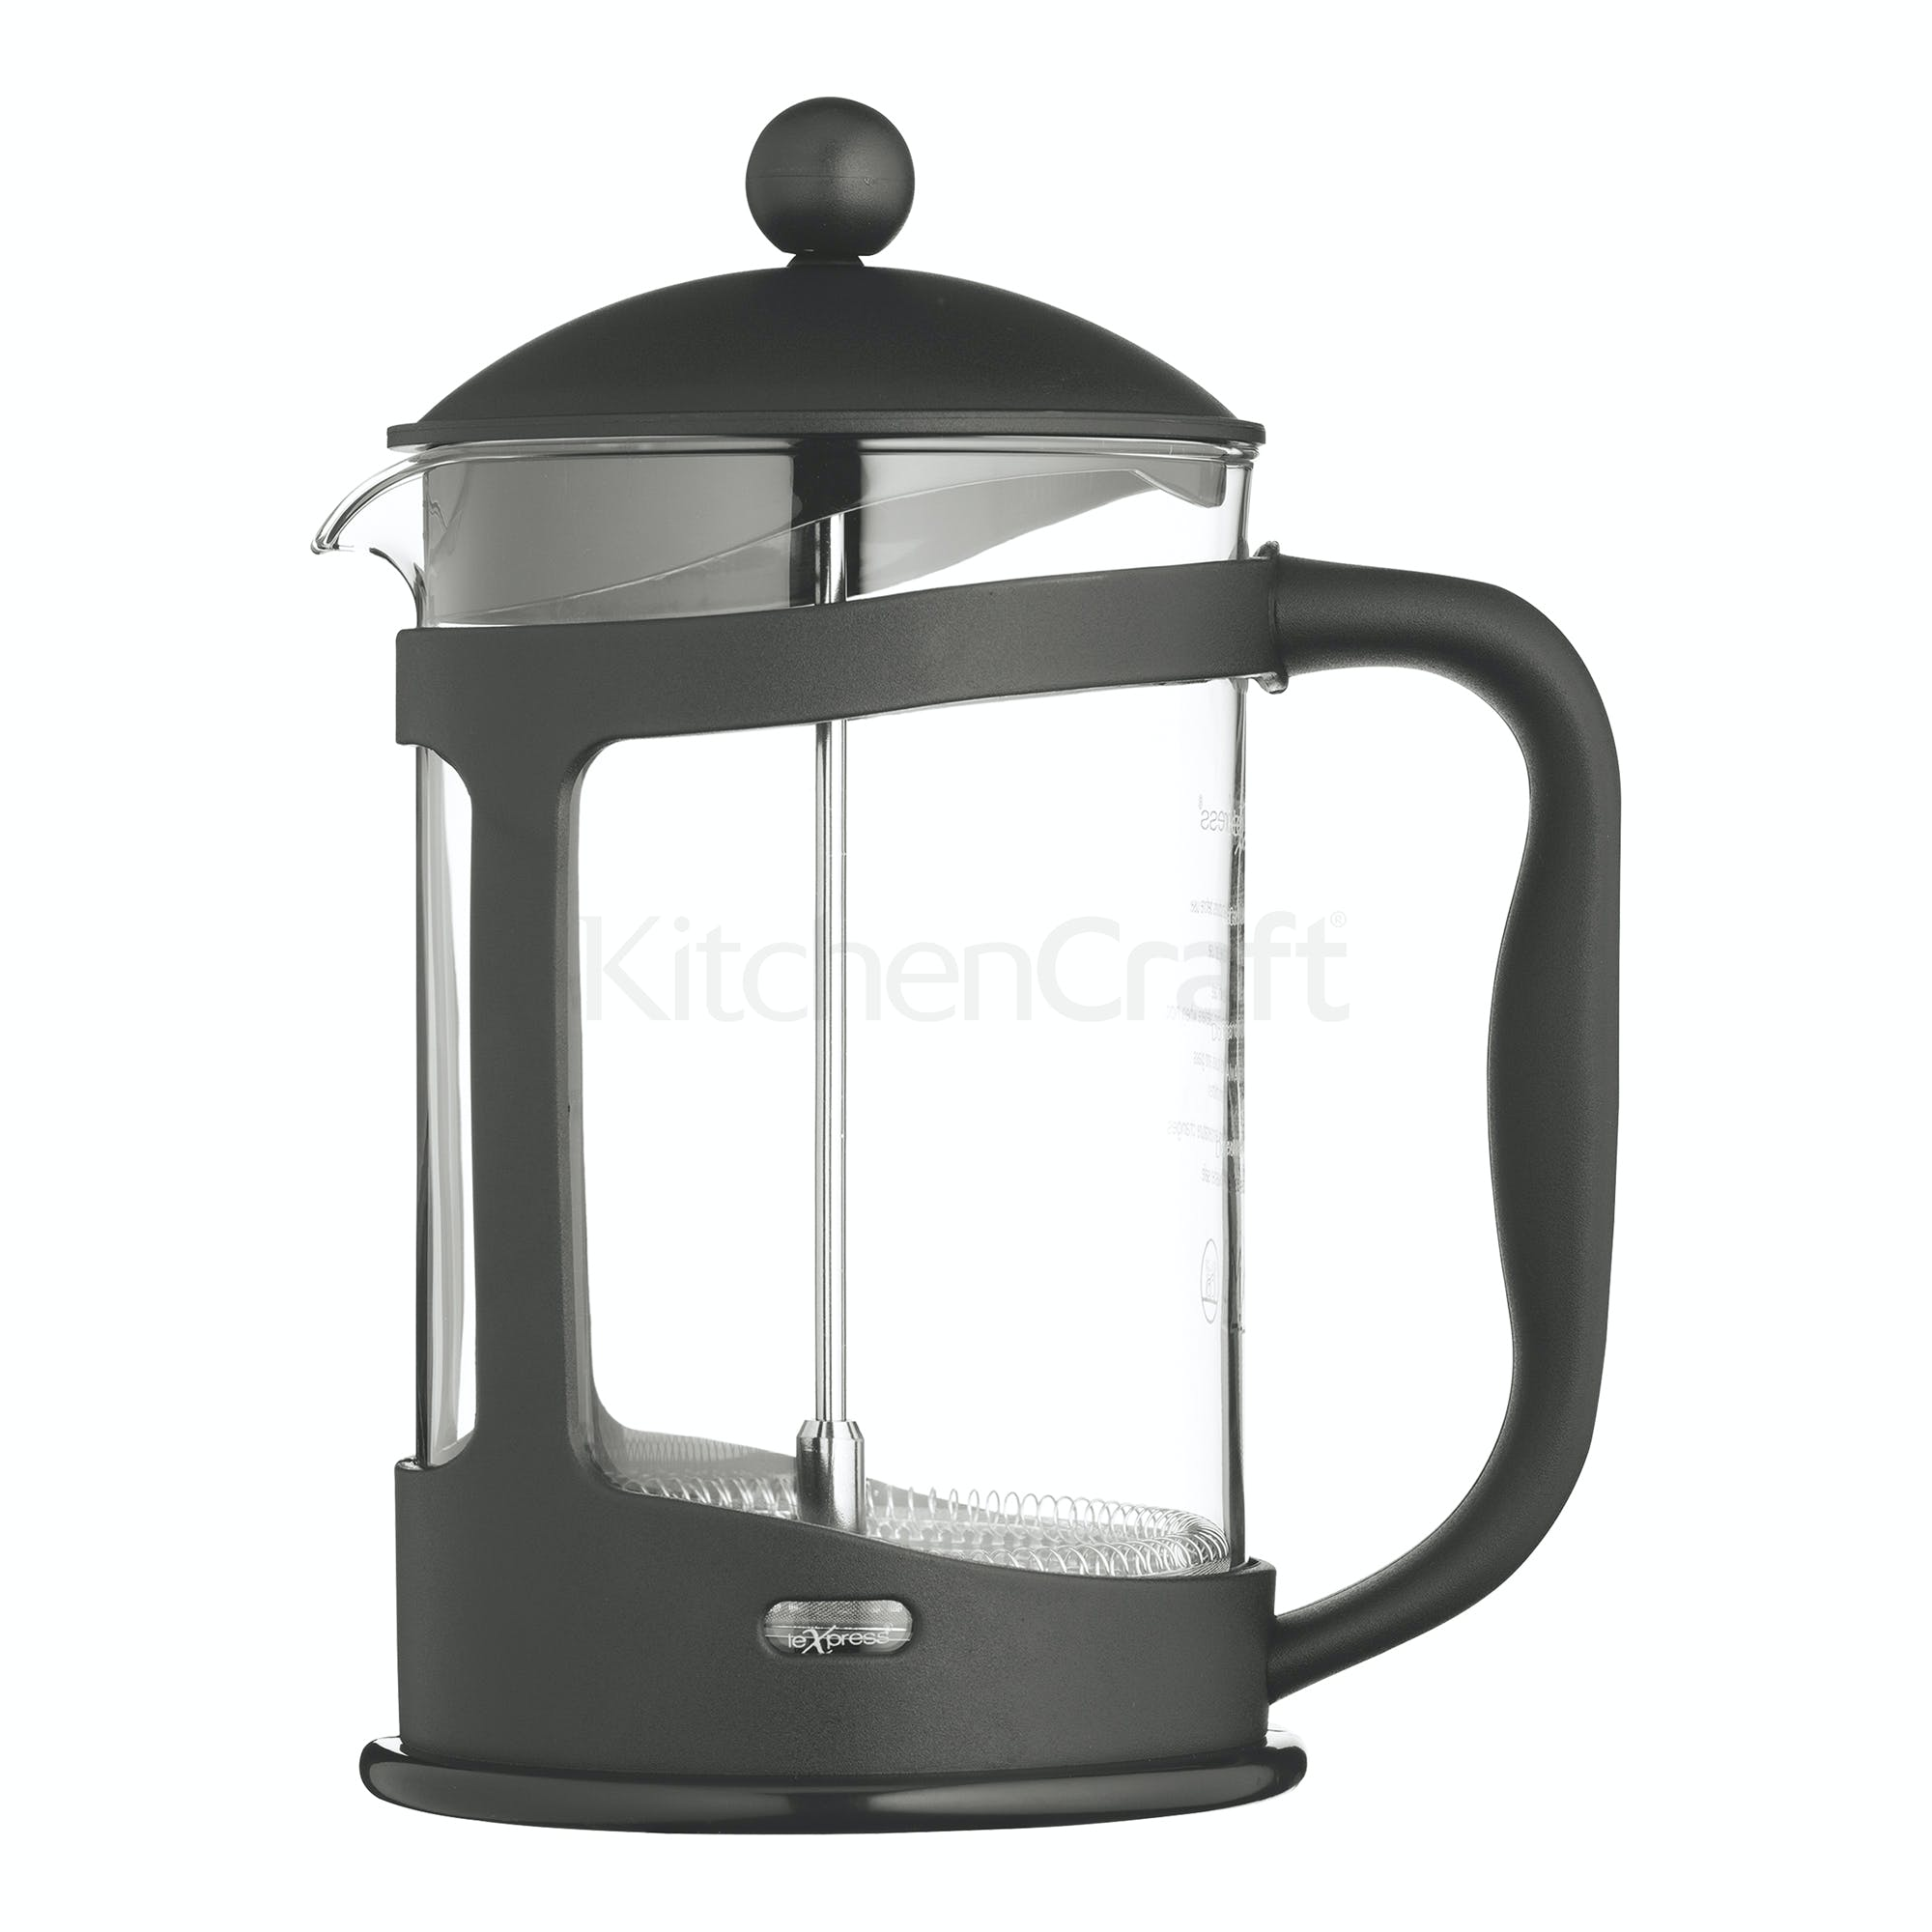 Lexpress 12 Cup Glass Cafetiere With Plastic Holder